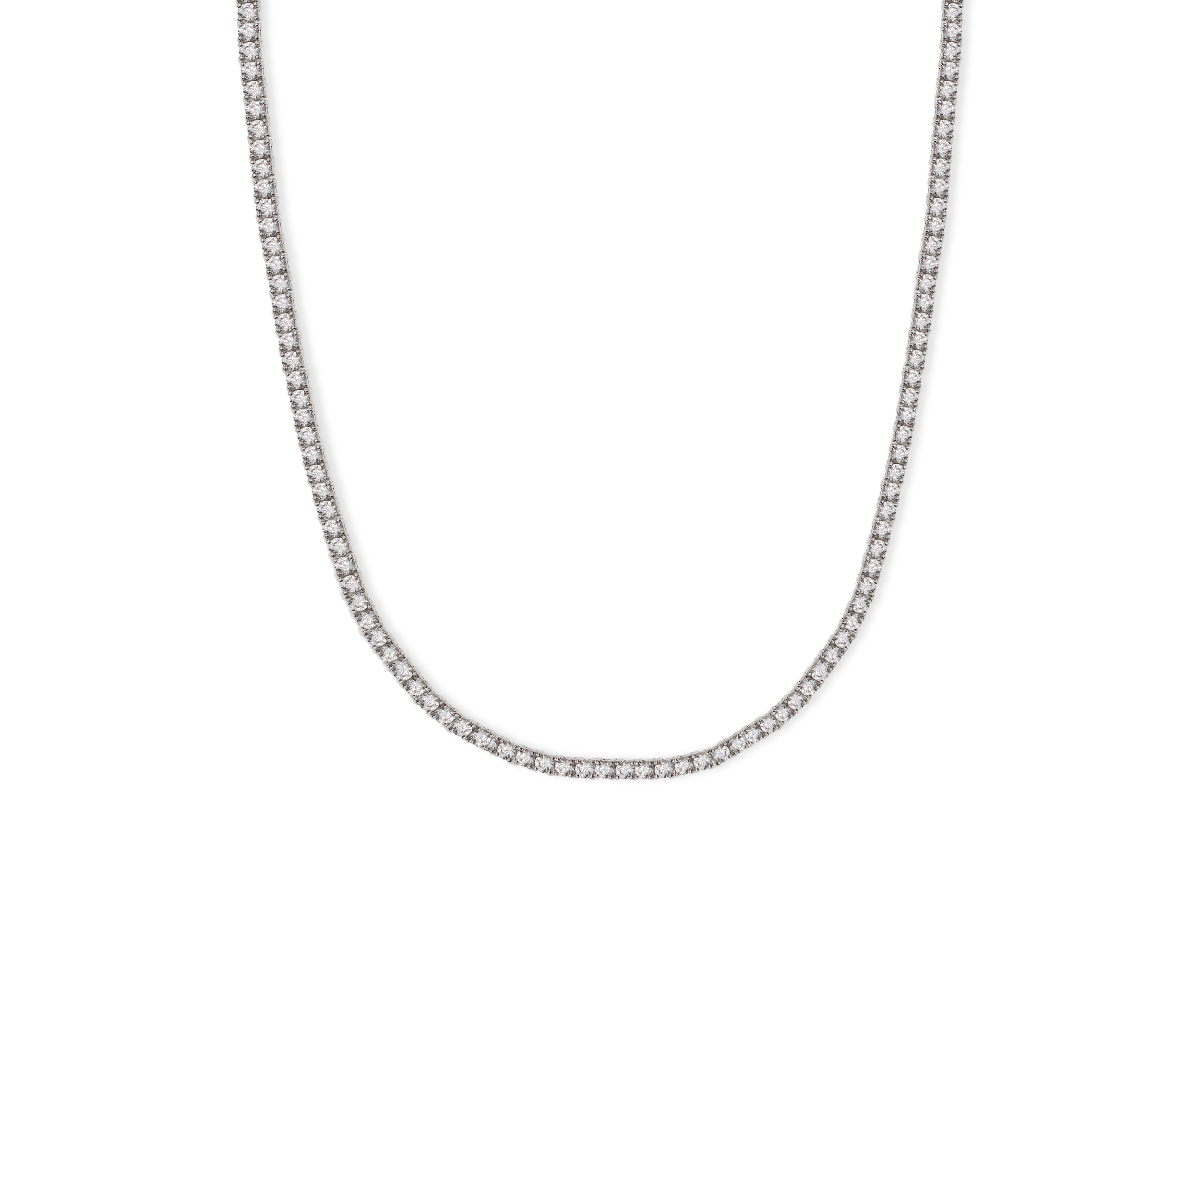 Tilly Tennis Necklace